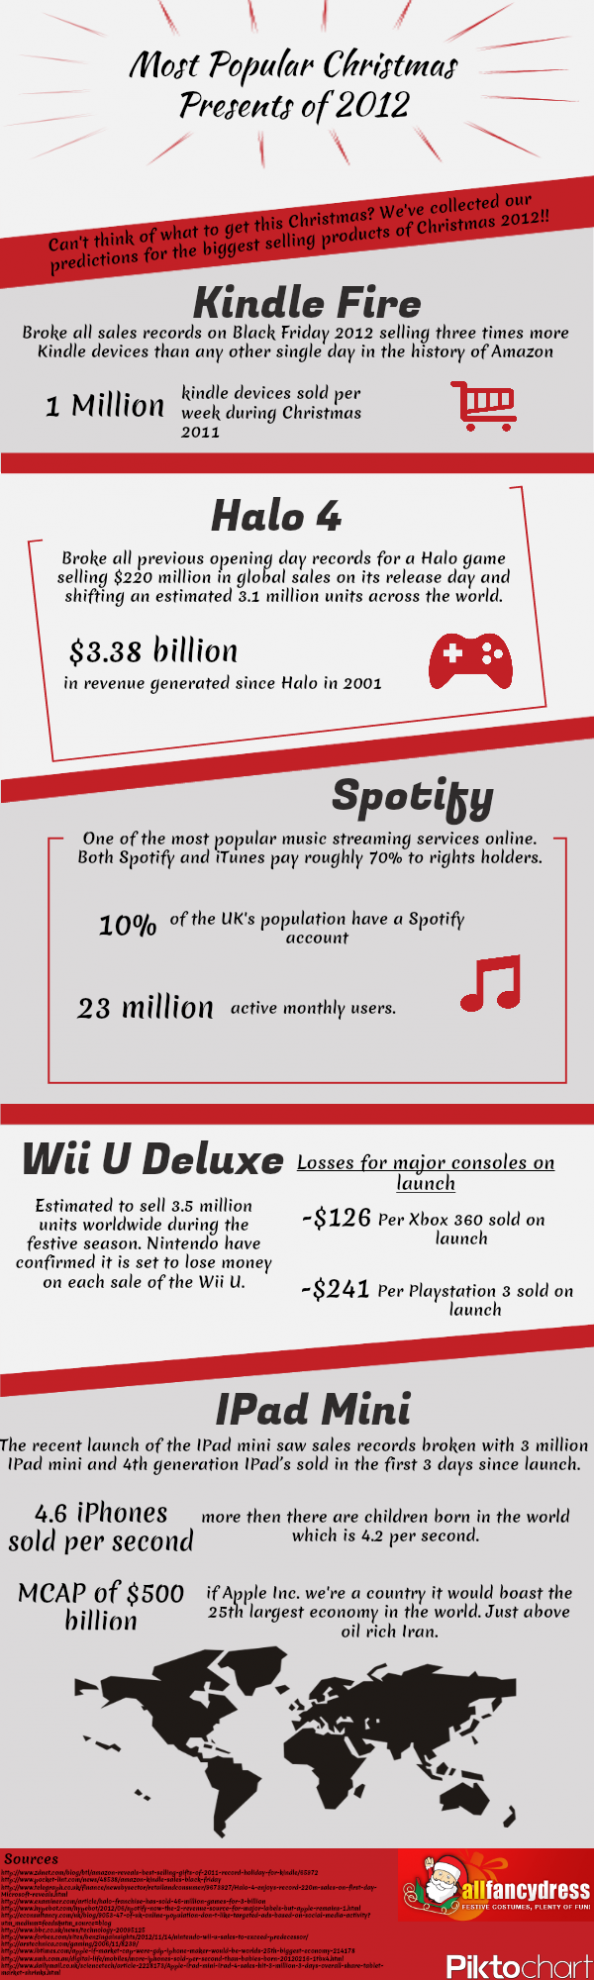 Most Popular Christmas Presents of 2012 Infographic